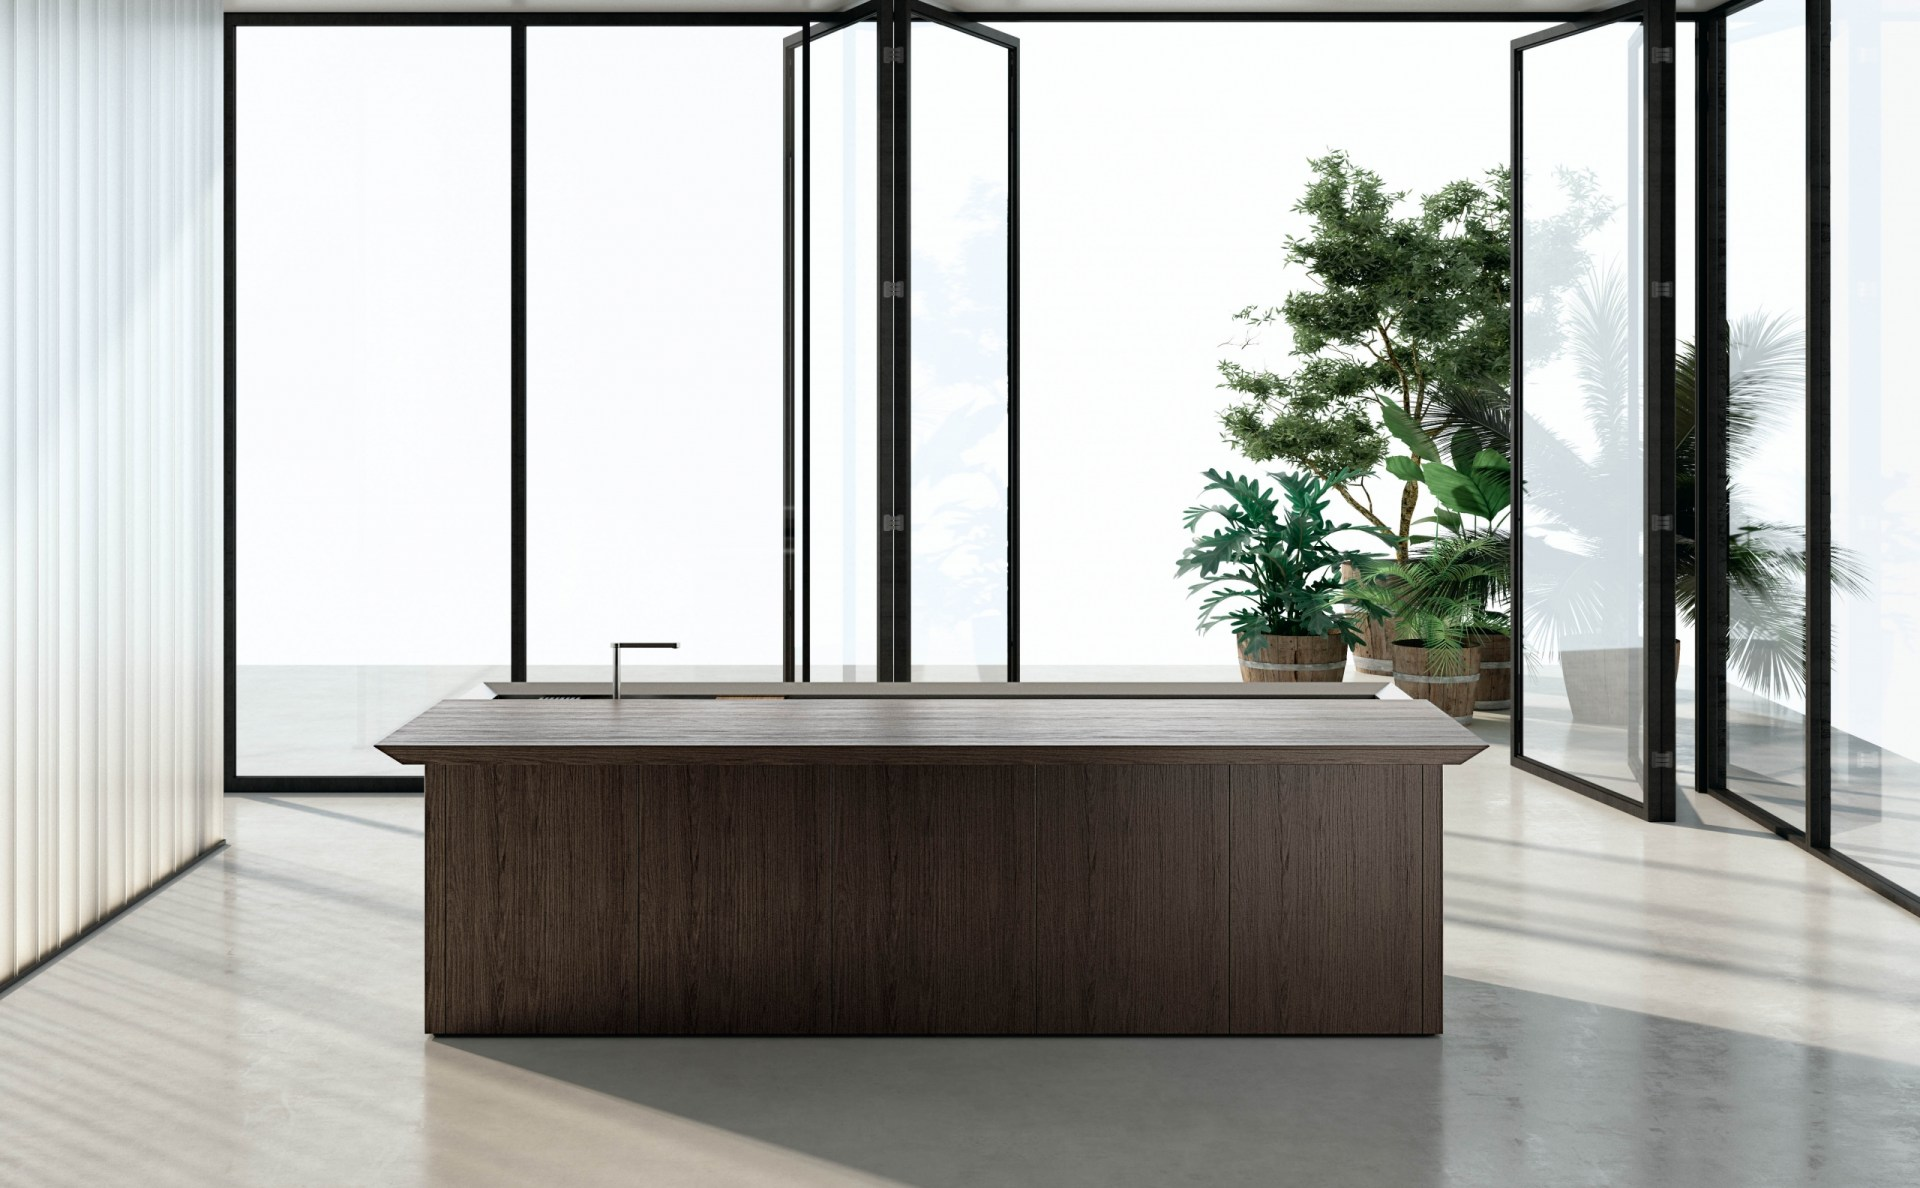 Awesome boffi cucine catalogo ideas for Boffi bagni prezzi